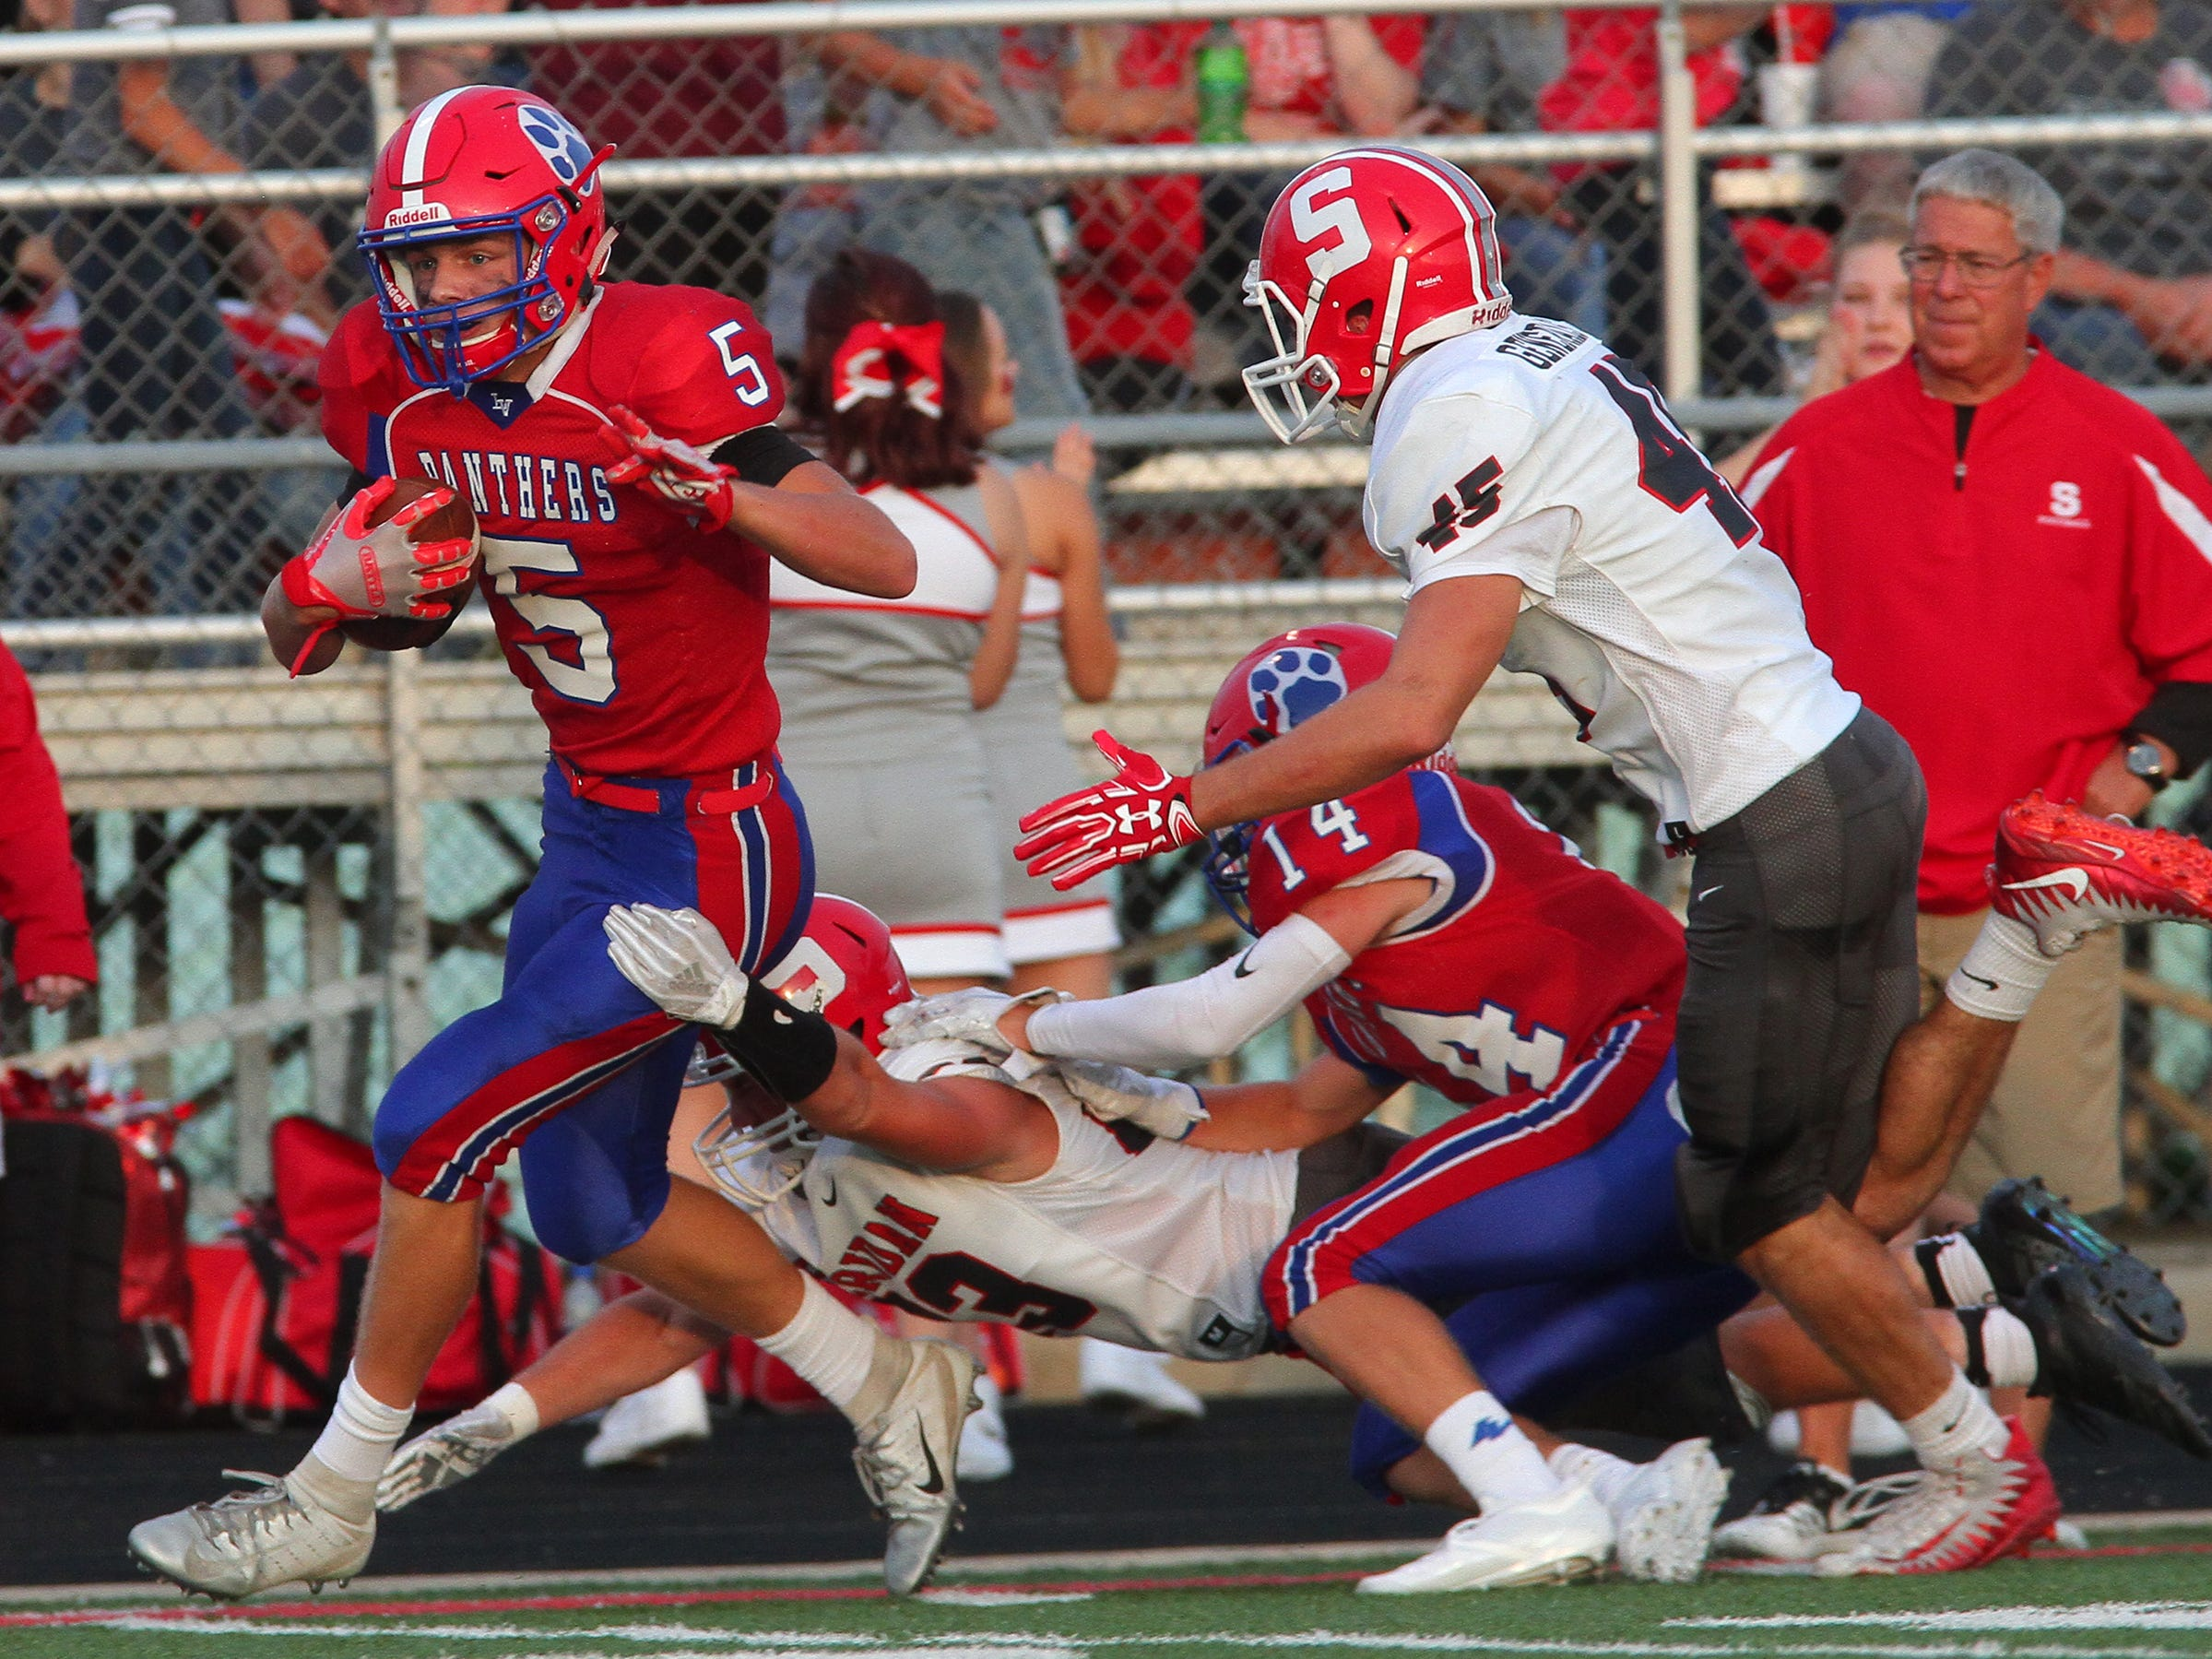 Sheridan seniors Nick Ranalli and Chance King move in on Licking Valley junior Carson Conley Friday during the Generals' 36-21 victory over the Panthers.